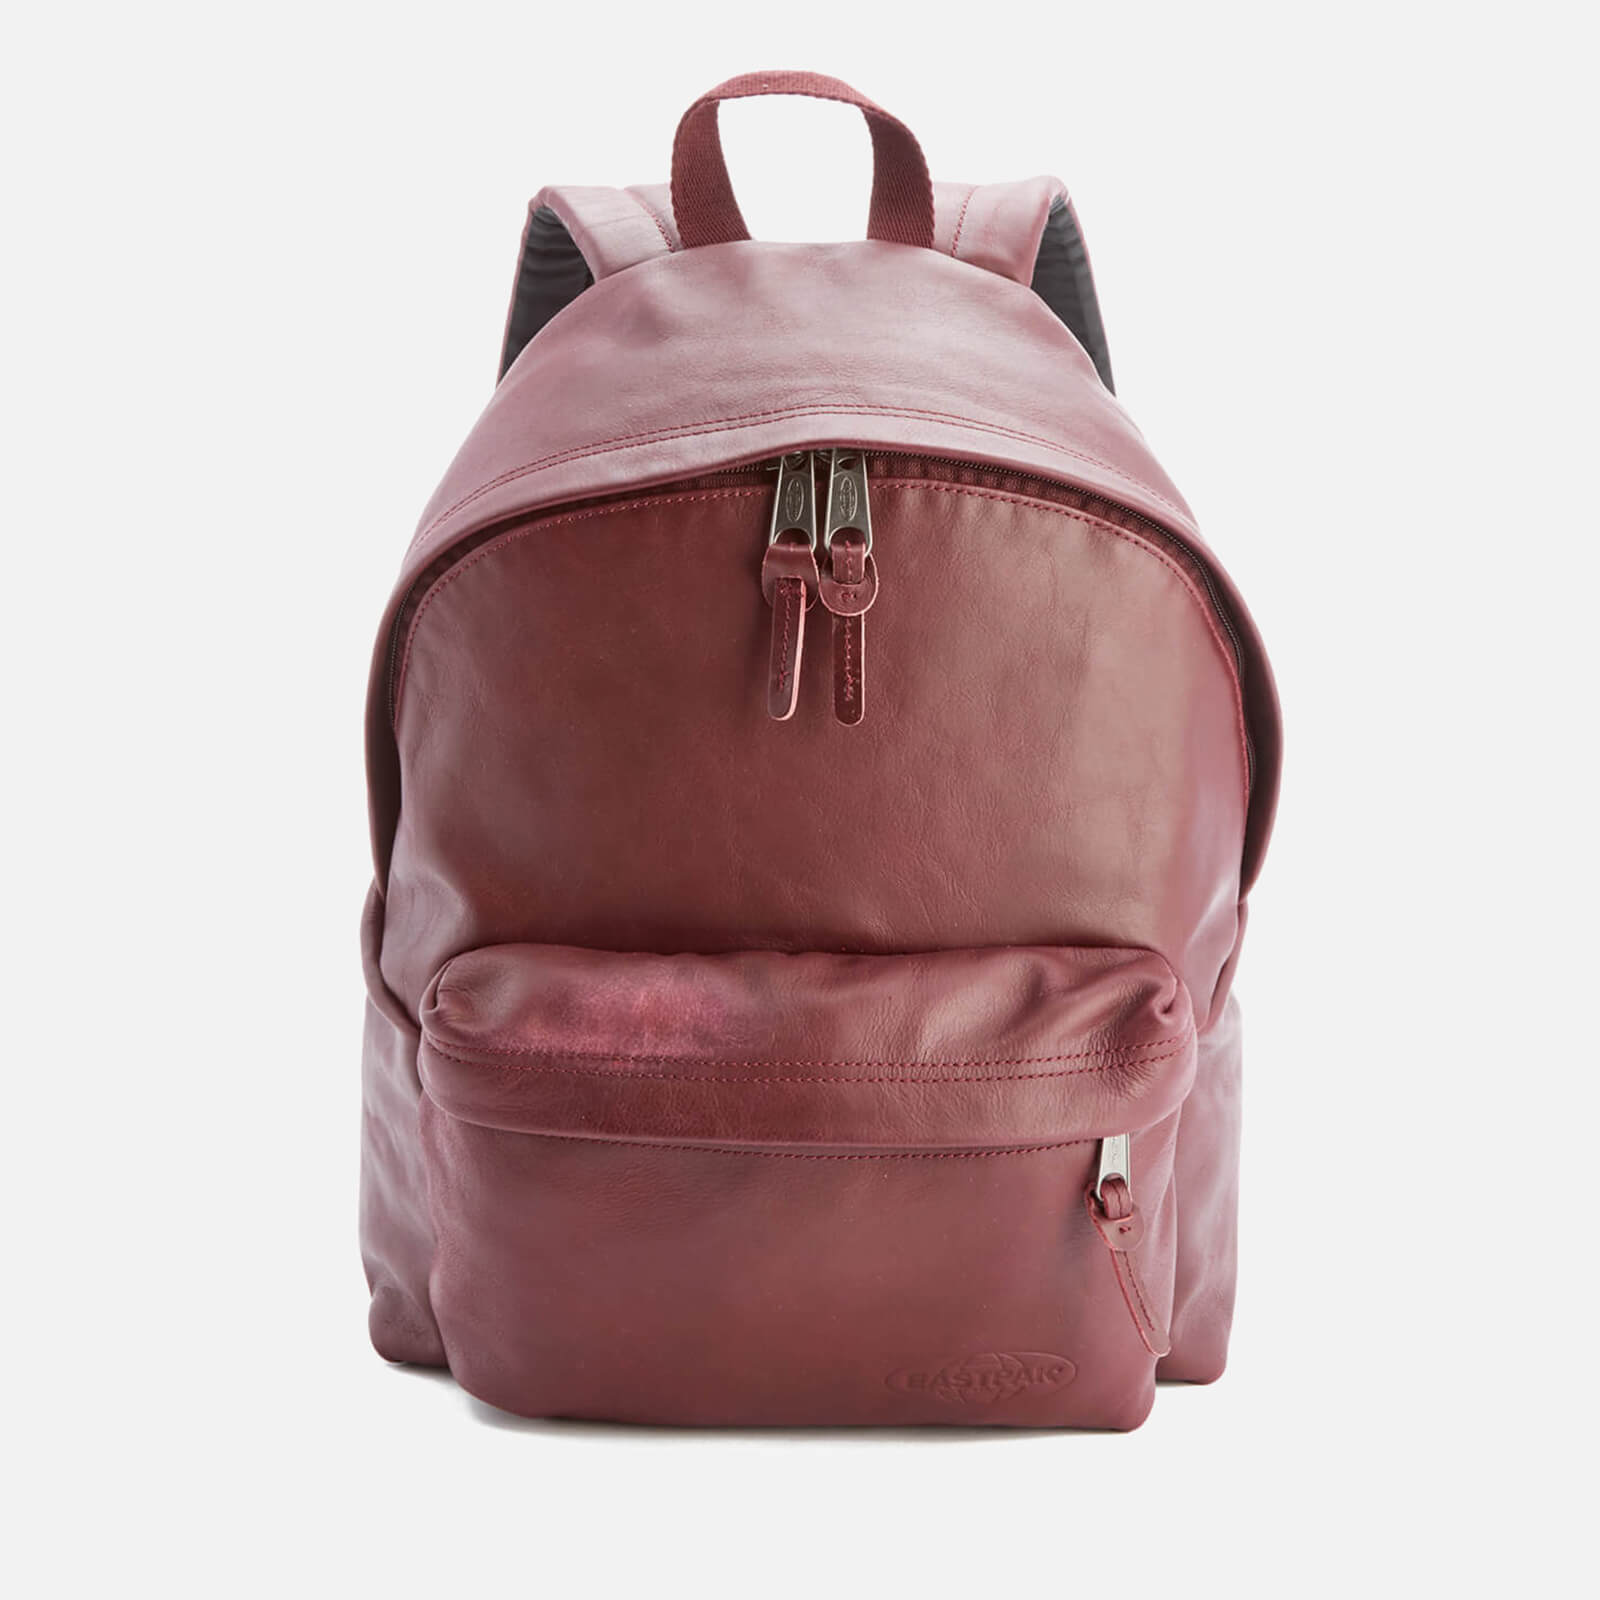 7c6a522d6 Eastpak Padded Pak'r Leather Backpack - Oxblood